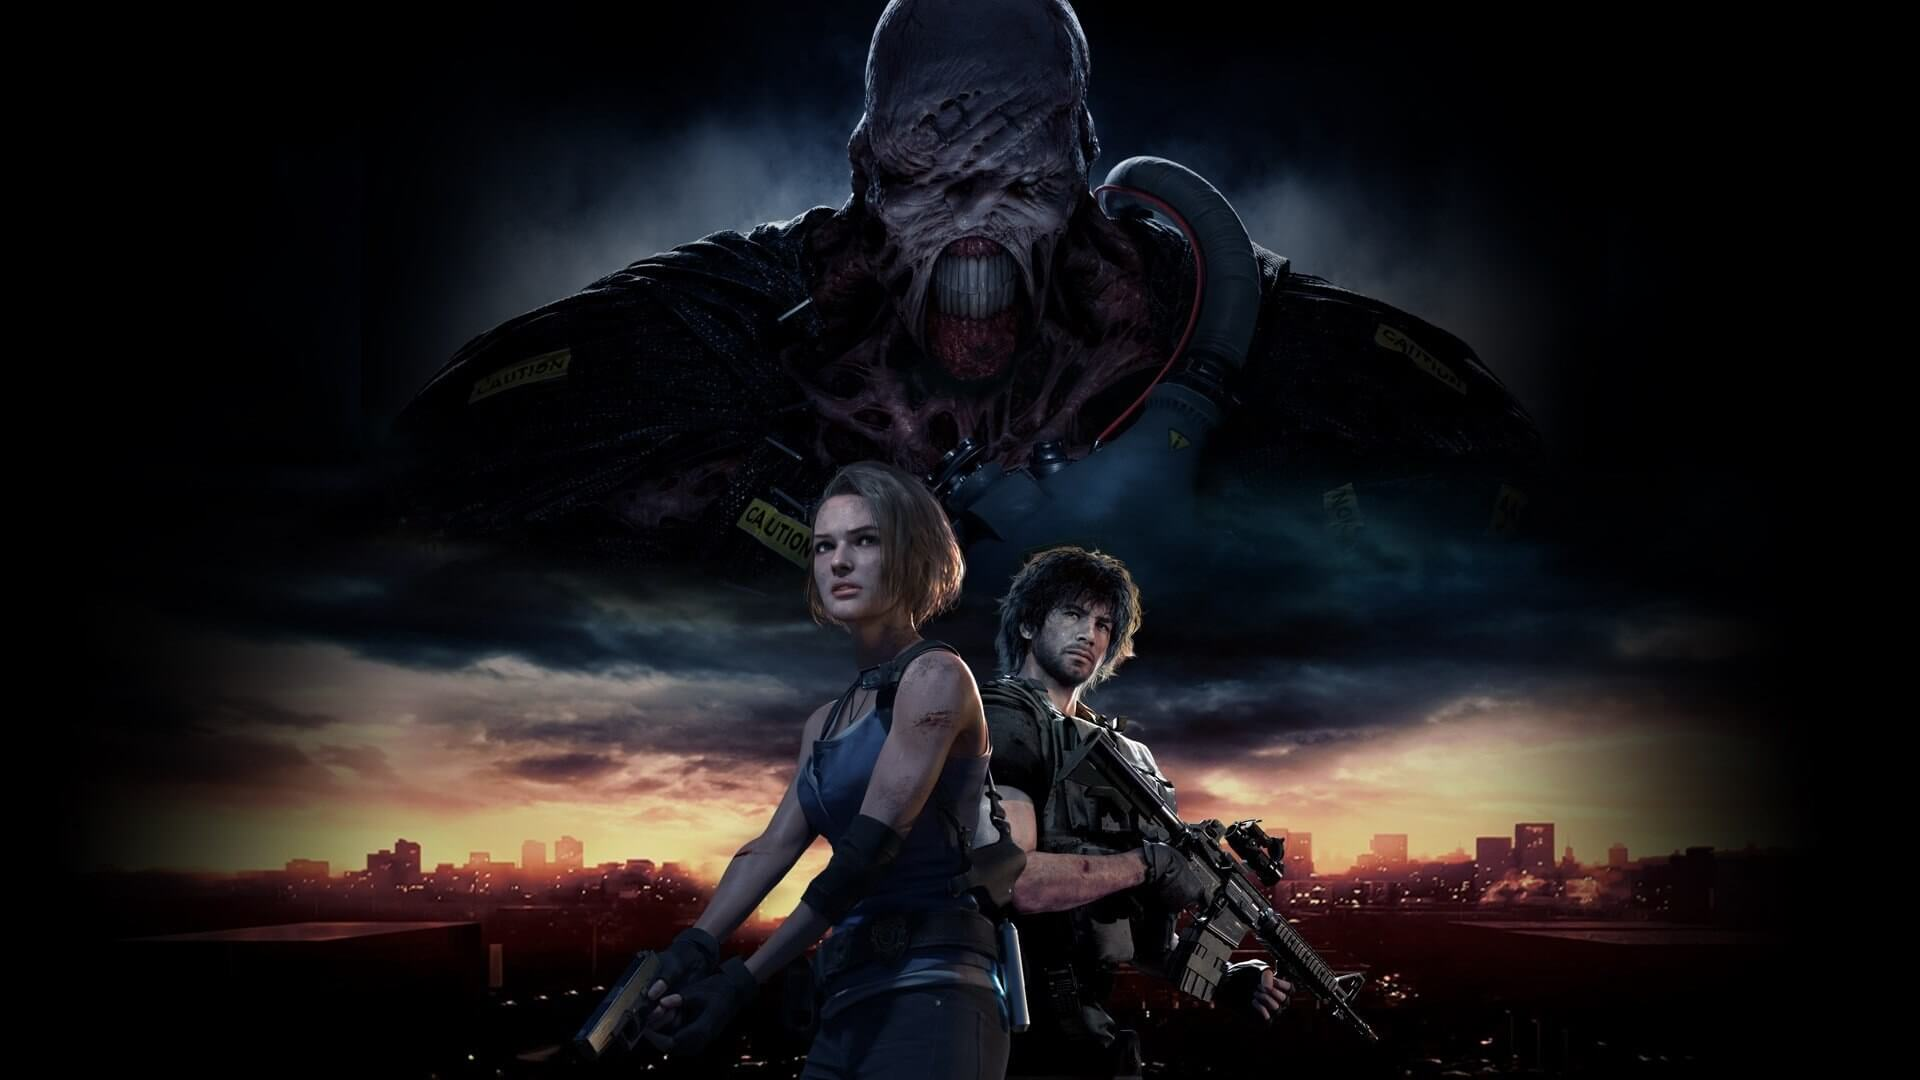 Netflix posts Resident Evil TV show synopsis then takes it down